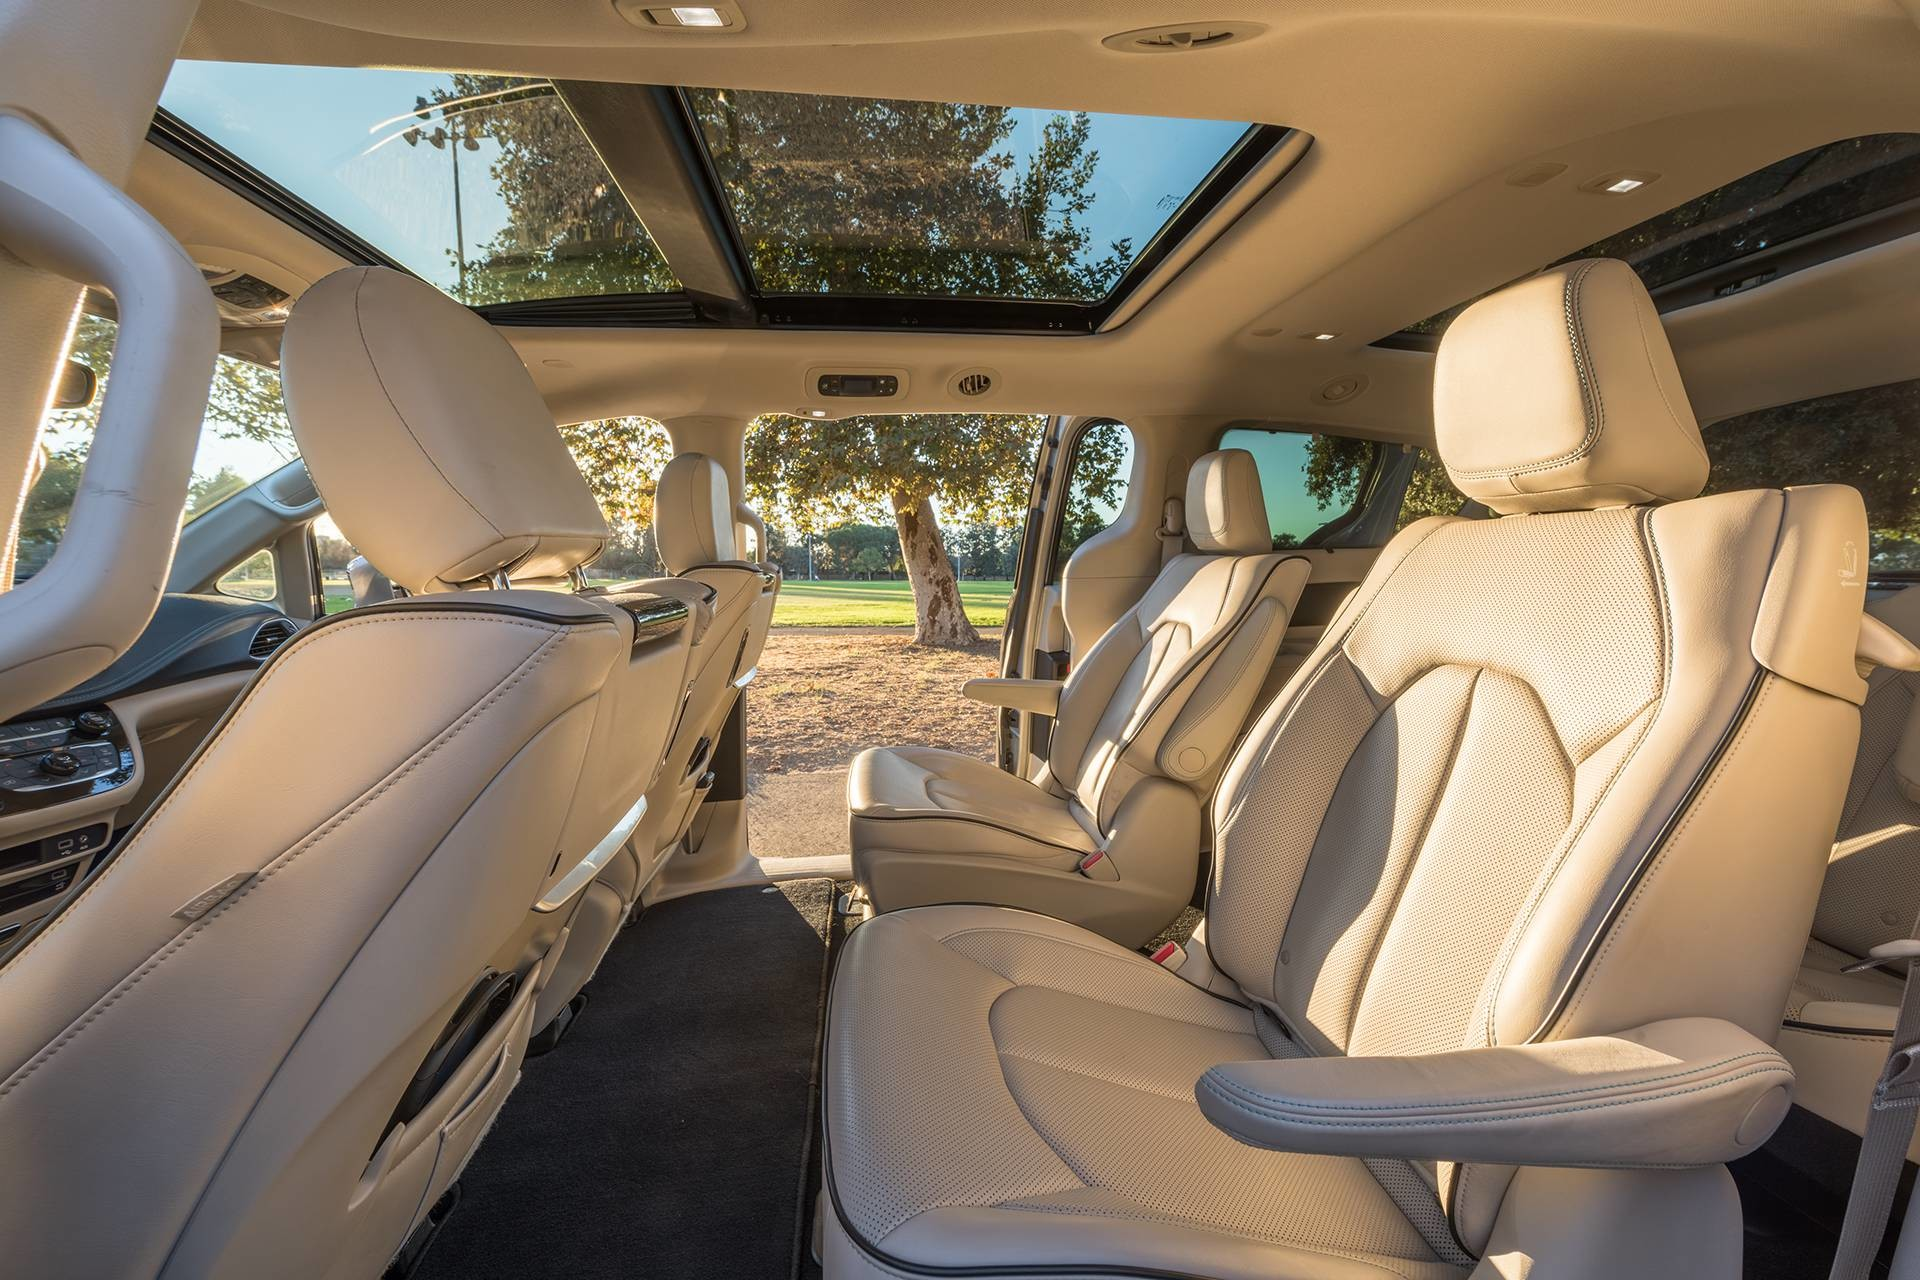 2019 Chrysler Pacifica Hybrid side view of premium nappa leather faced interior